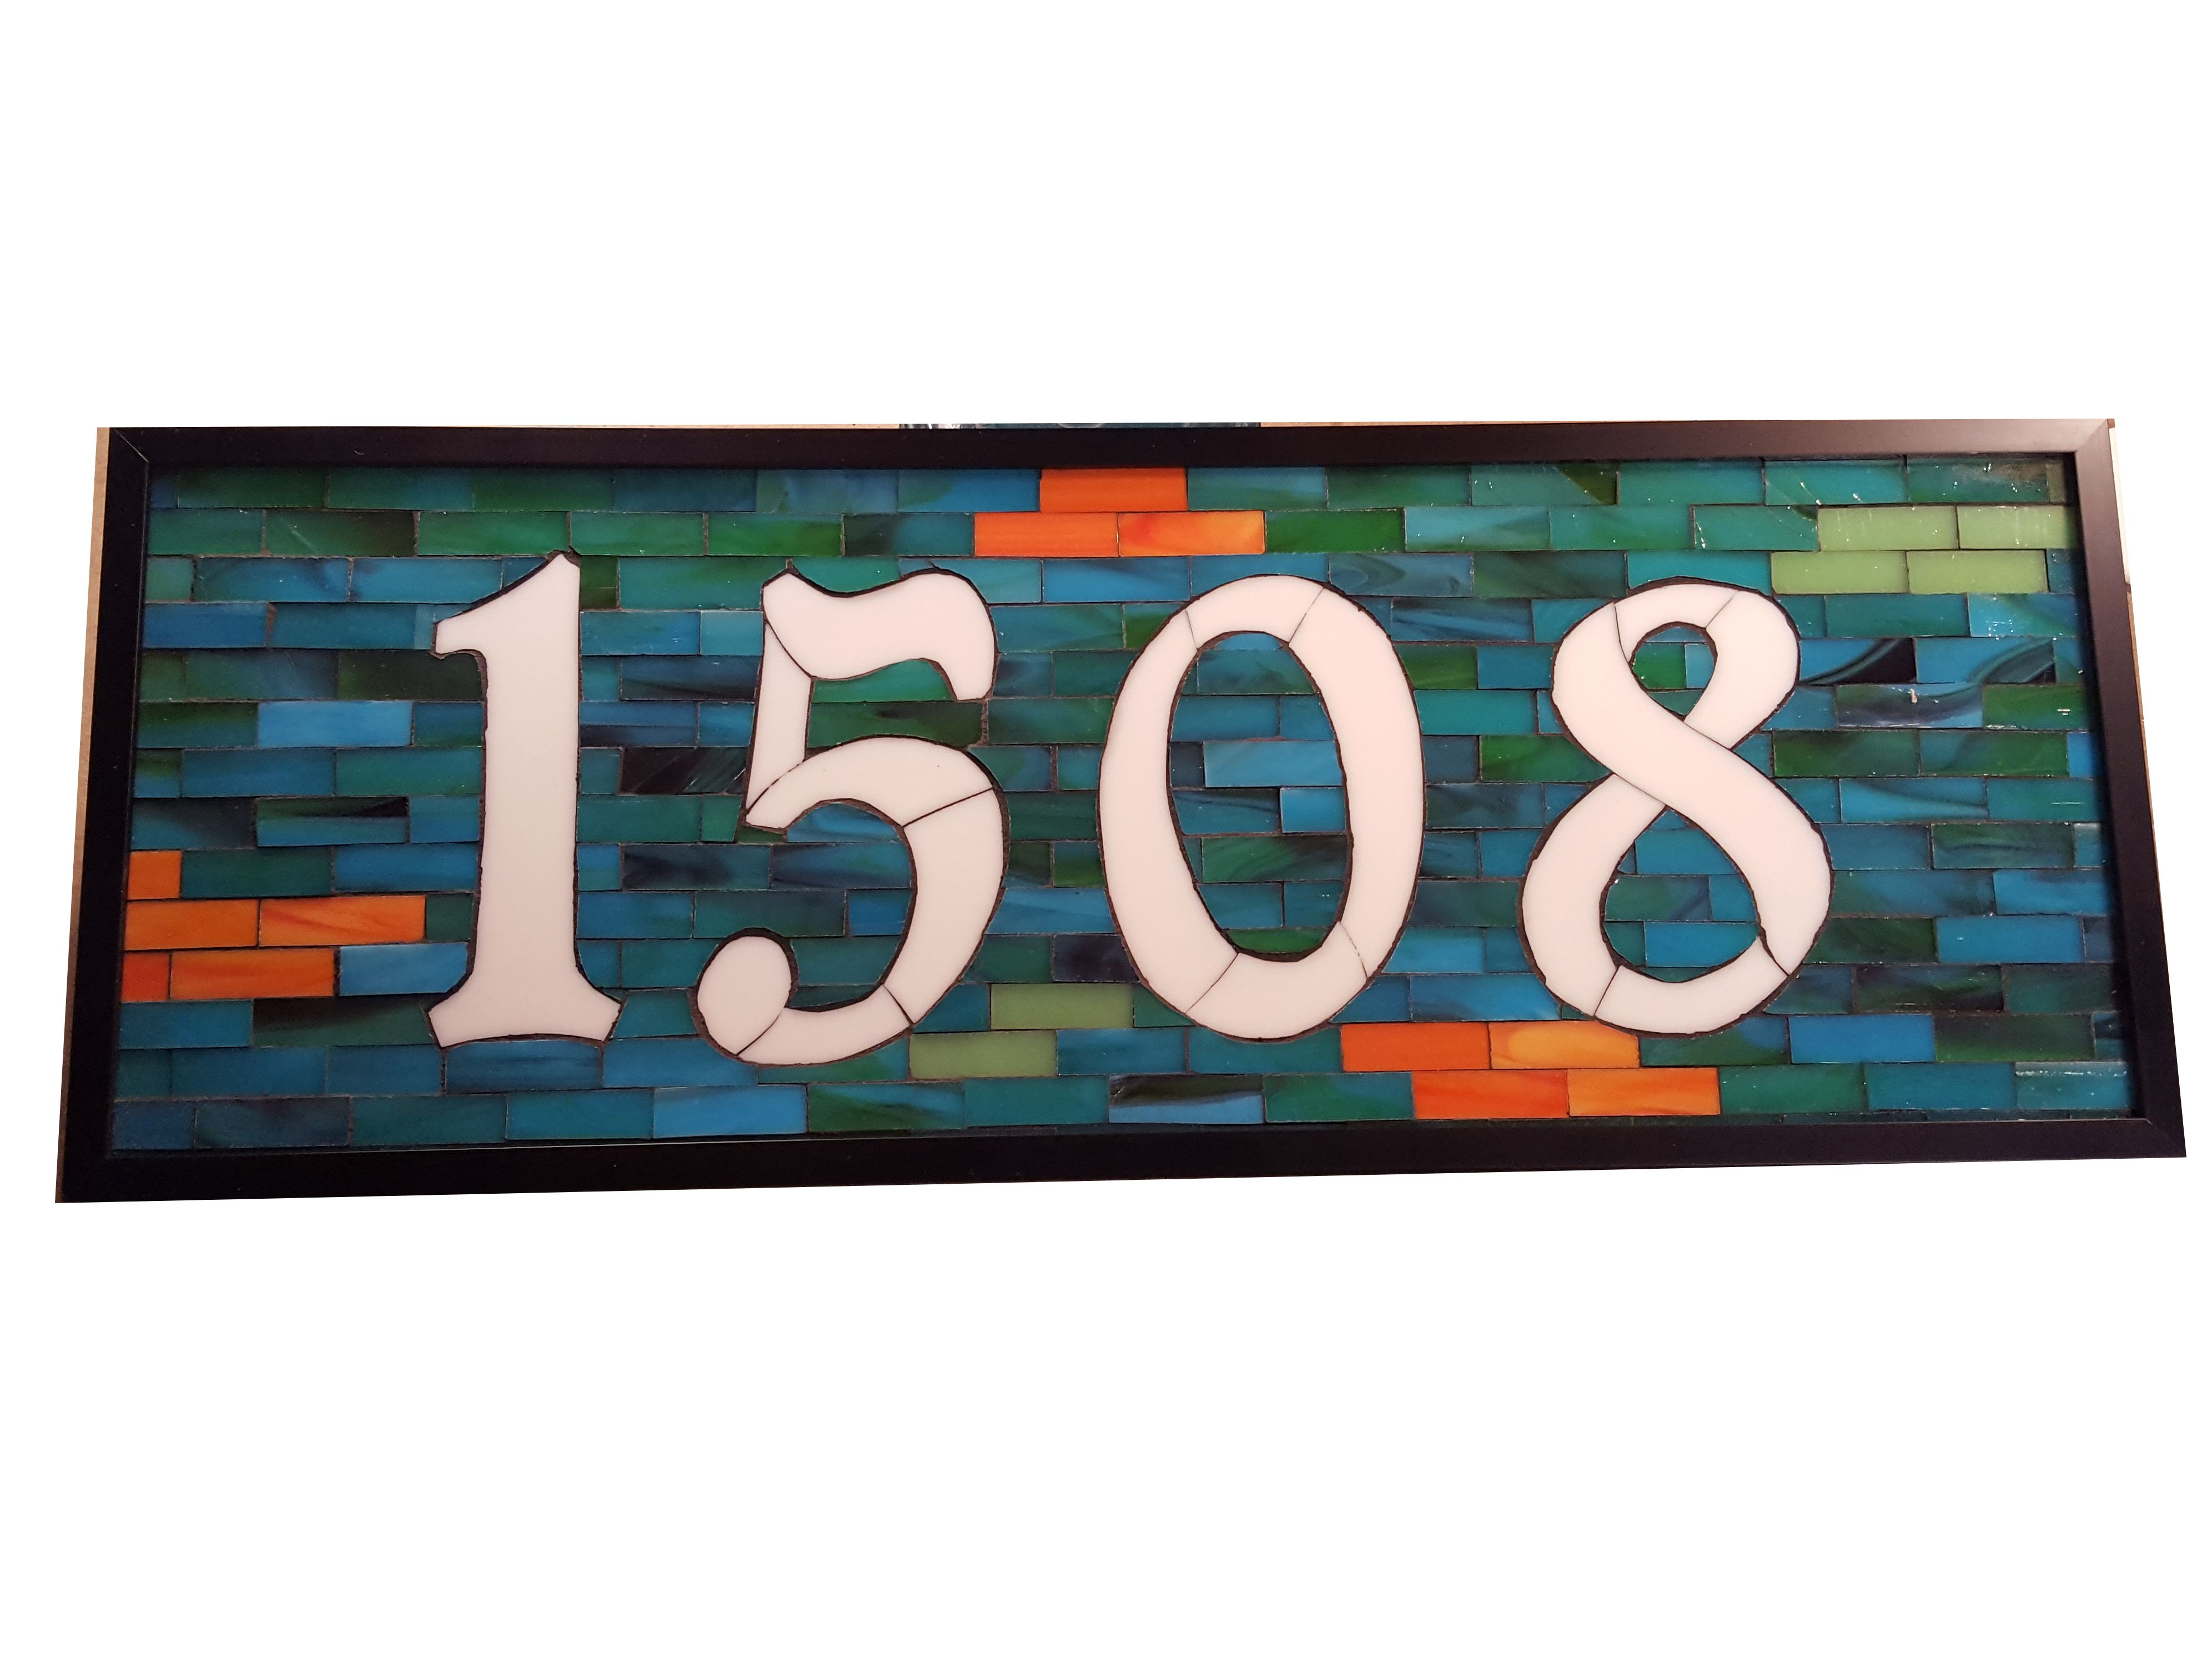 Stained glass mosaic house number by sequential glass art mosaic